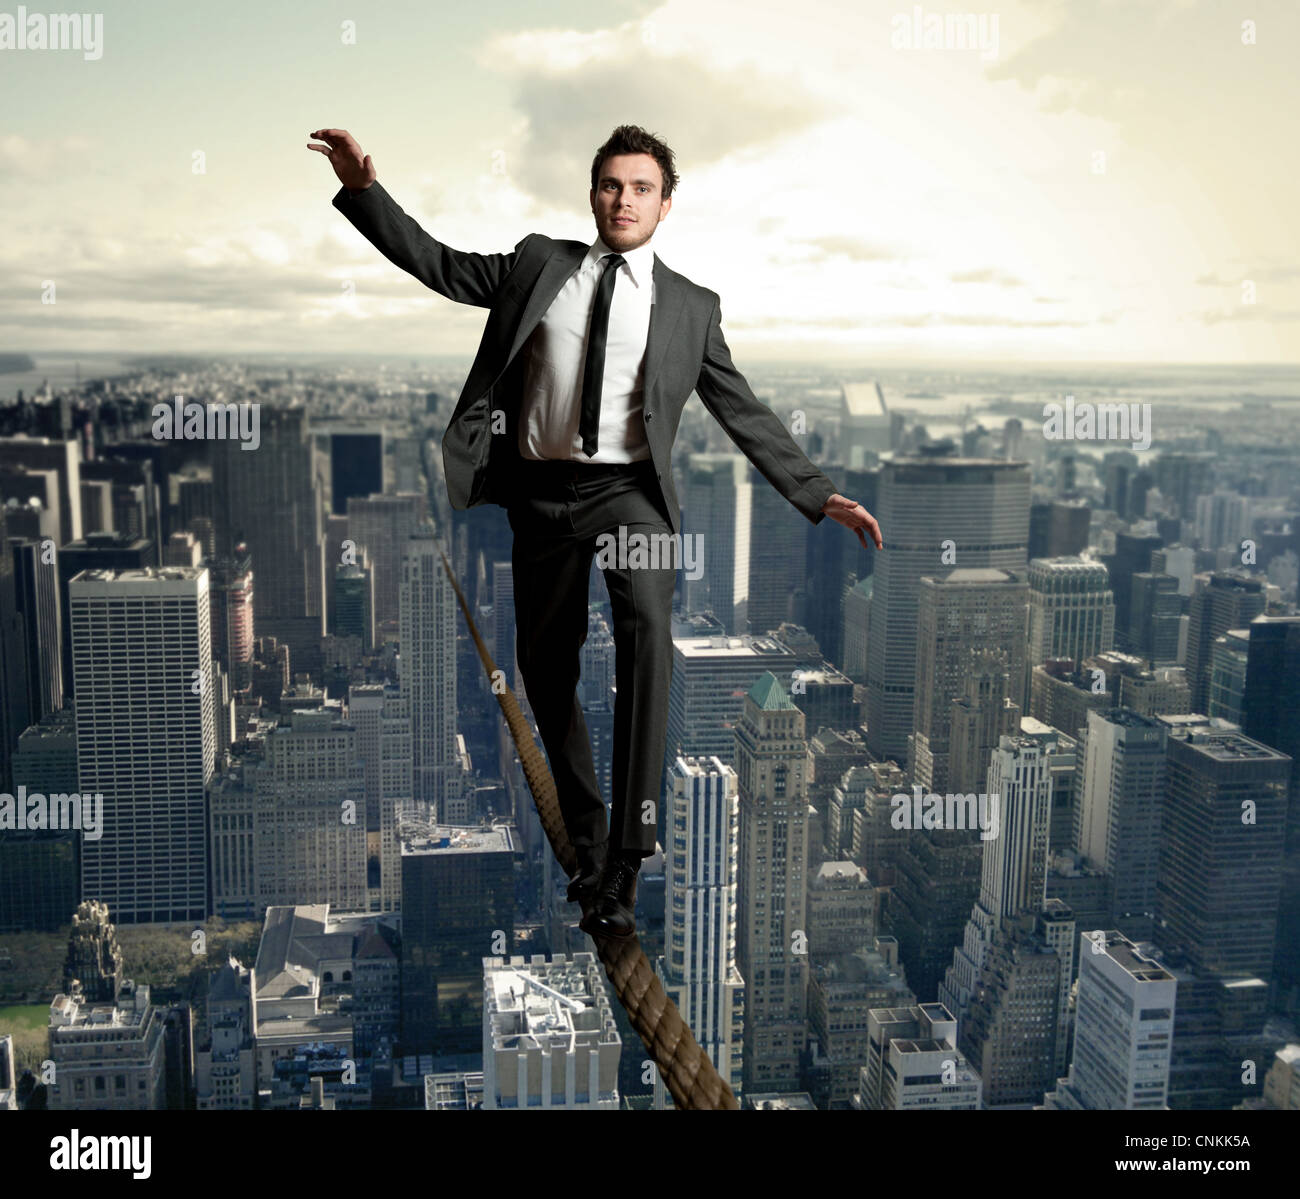 Businessman is balancing on a rope - Stock Image